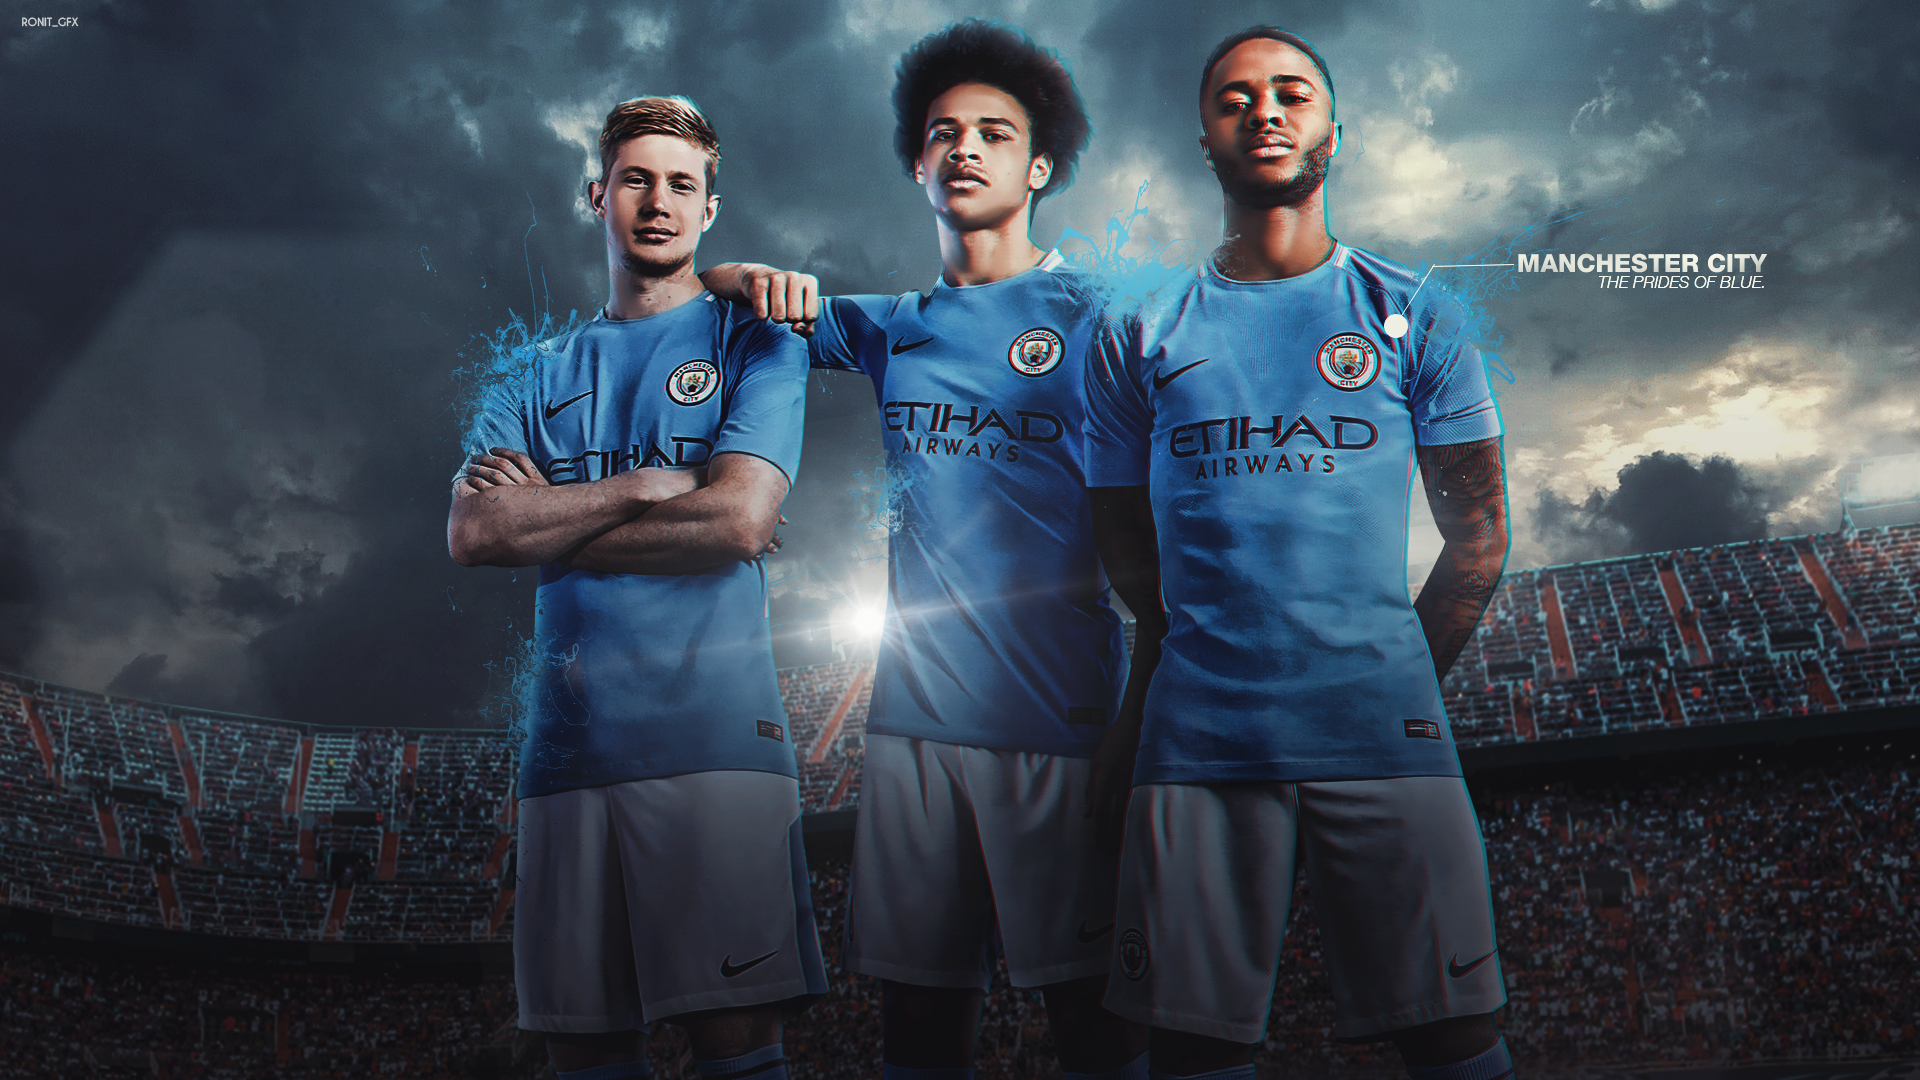 Manchester City Wallpaper 2017 Wallpaper Download 49: Manchester City 2017/18 Wallpaper By RonitGFX On DeviantArt